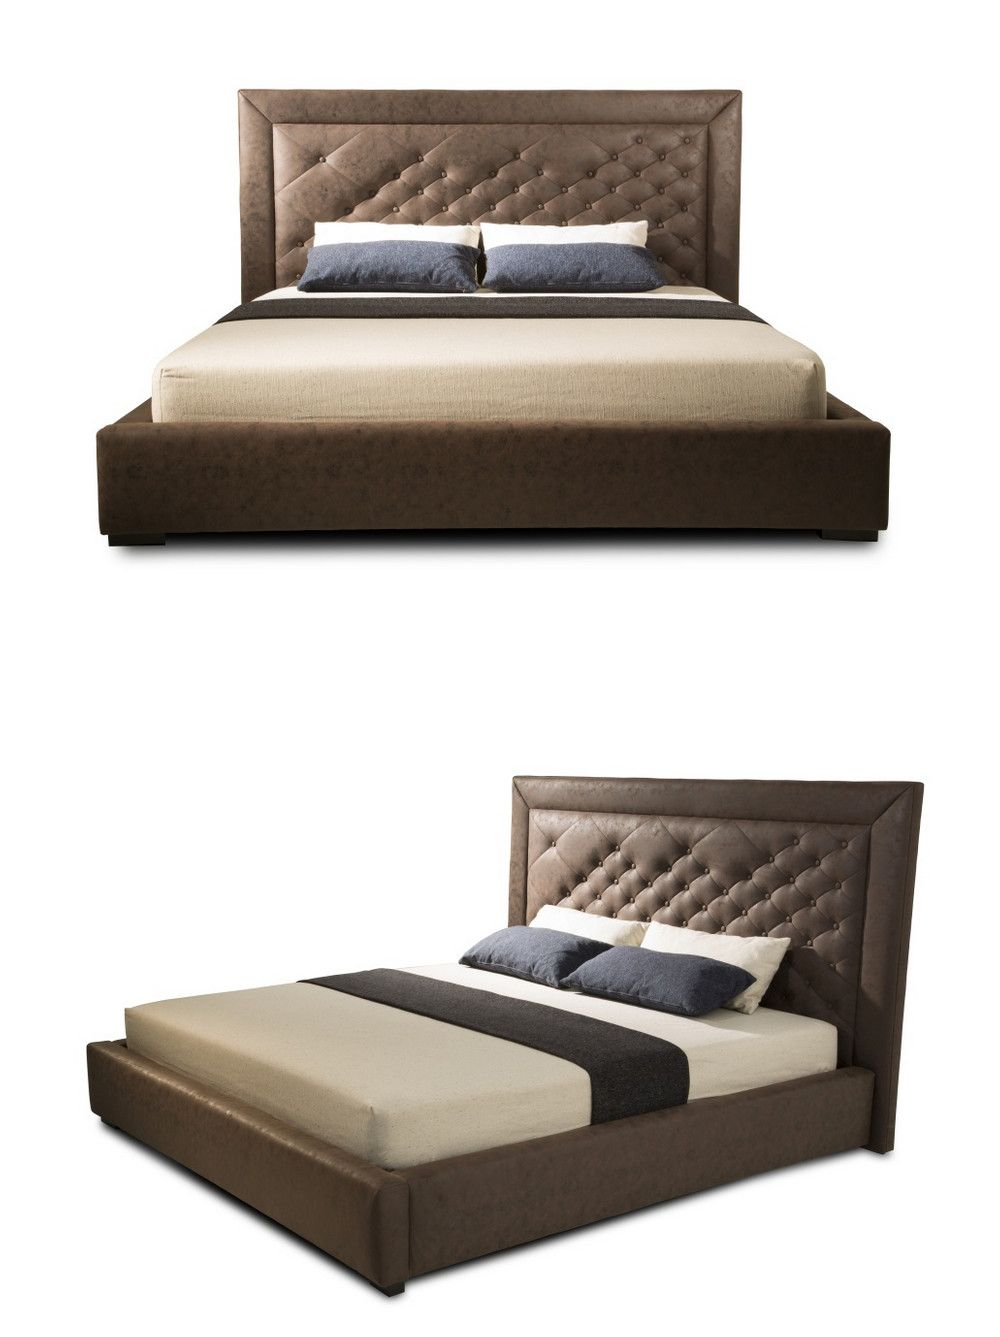 Hot Sale Home Furniture Queen Size Latest Bed Designs New Design